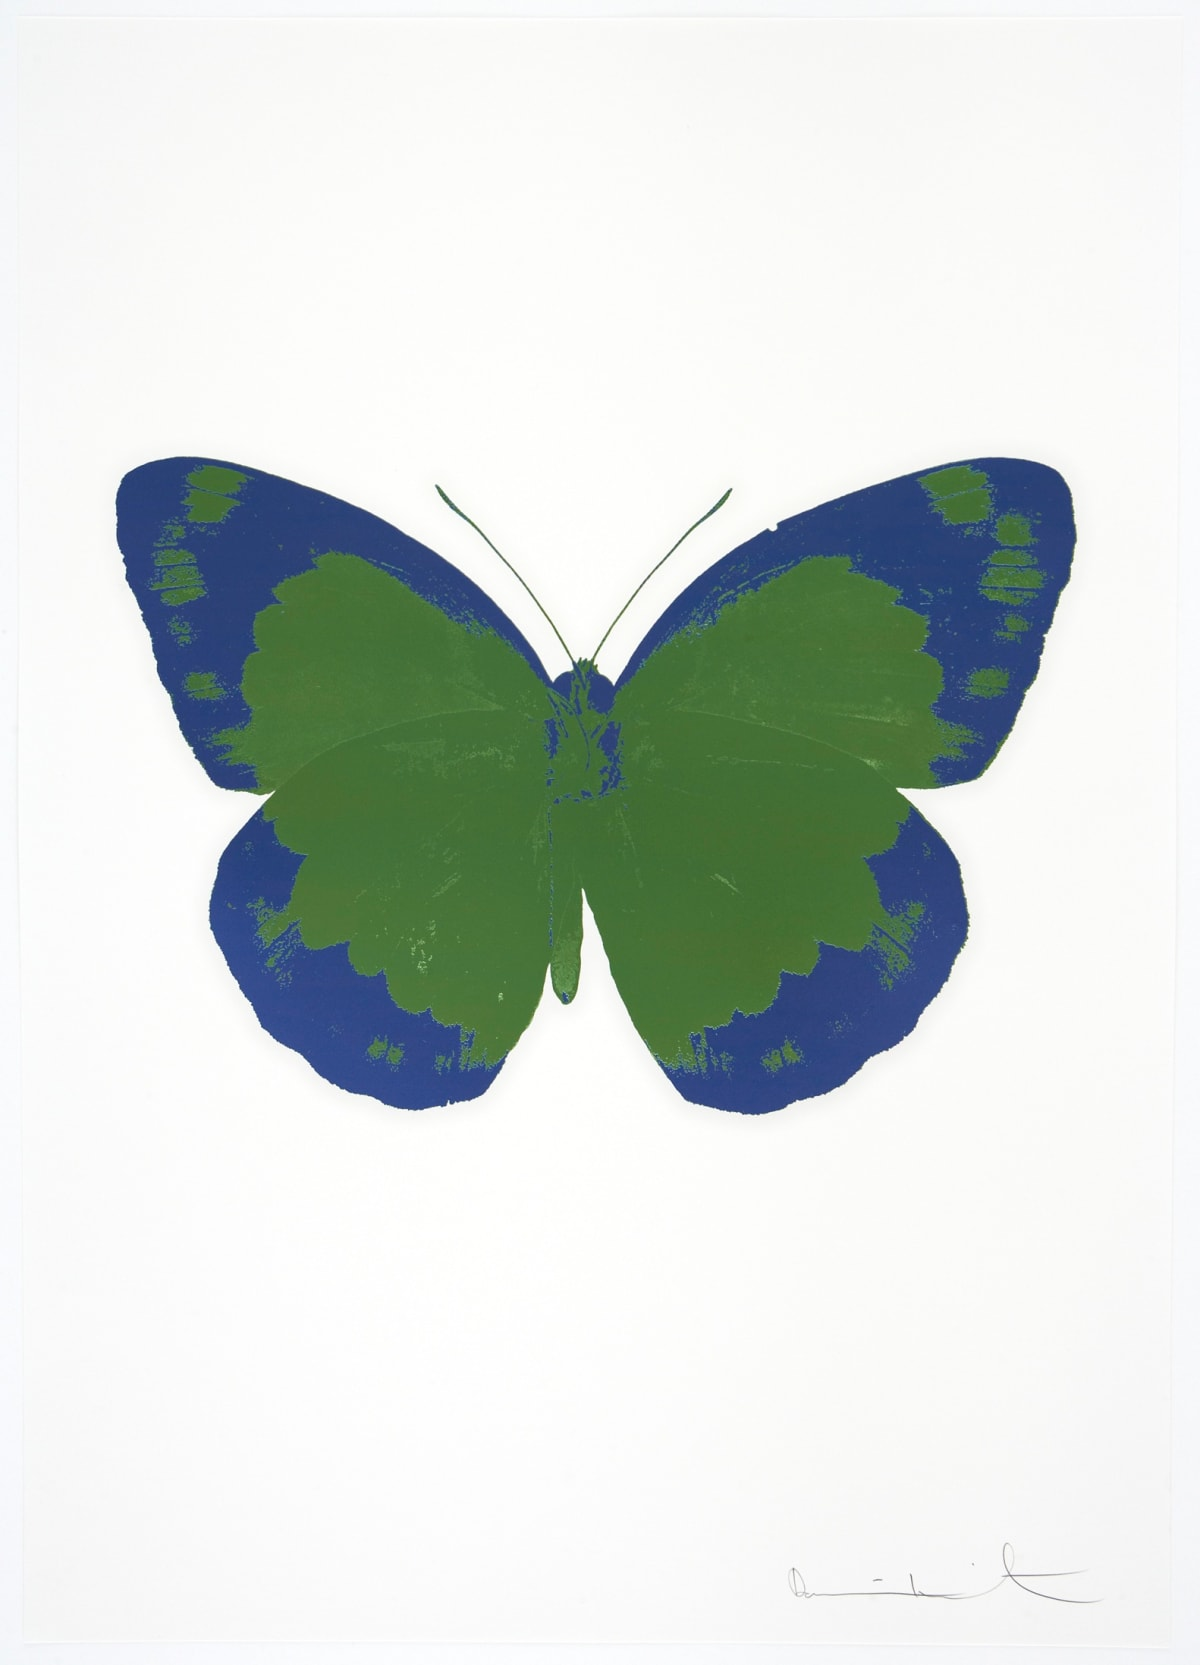 Damien Hirst The Souls II - Leaf Green/Frost Blue/Blind Impression, 2010 2 colour foil block on 300gsm Arches 88 archival paper. Signed and numbered. Published by Paul Stolper and Other Criteria 72 x 51cm OC7886 / 658-69 Edition of 15